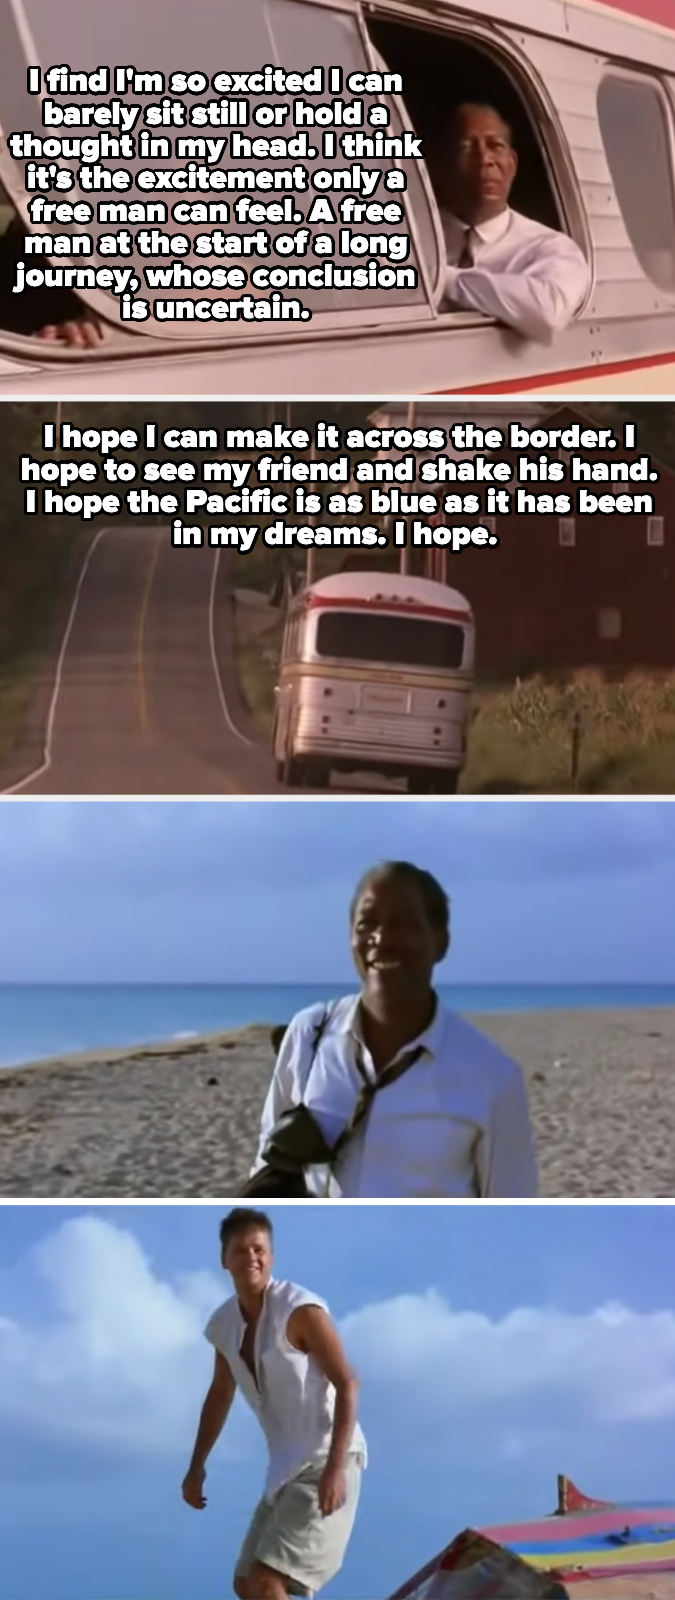 Red says he hopes he can see his friend again and shake his hand, and then he and Andy reunite on the beach